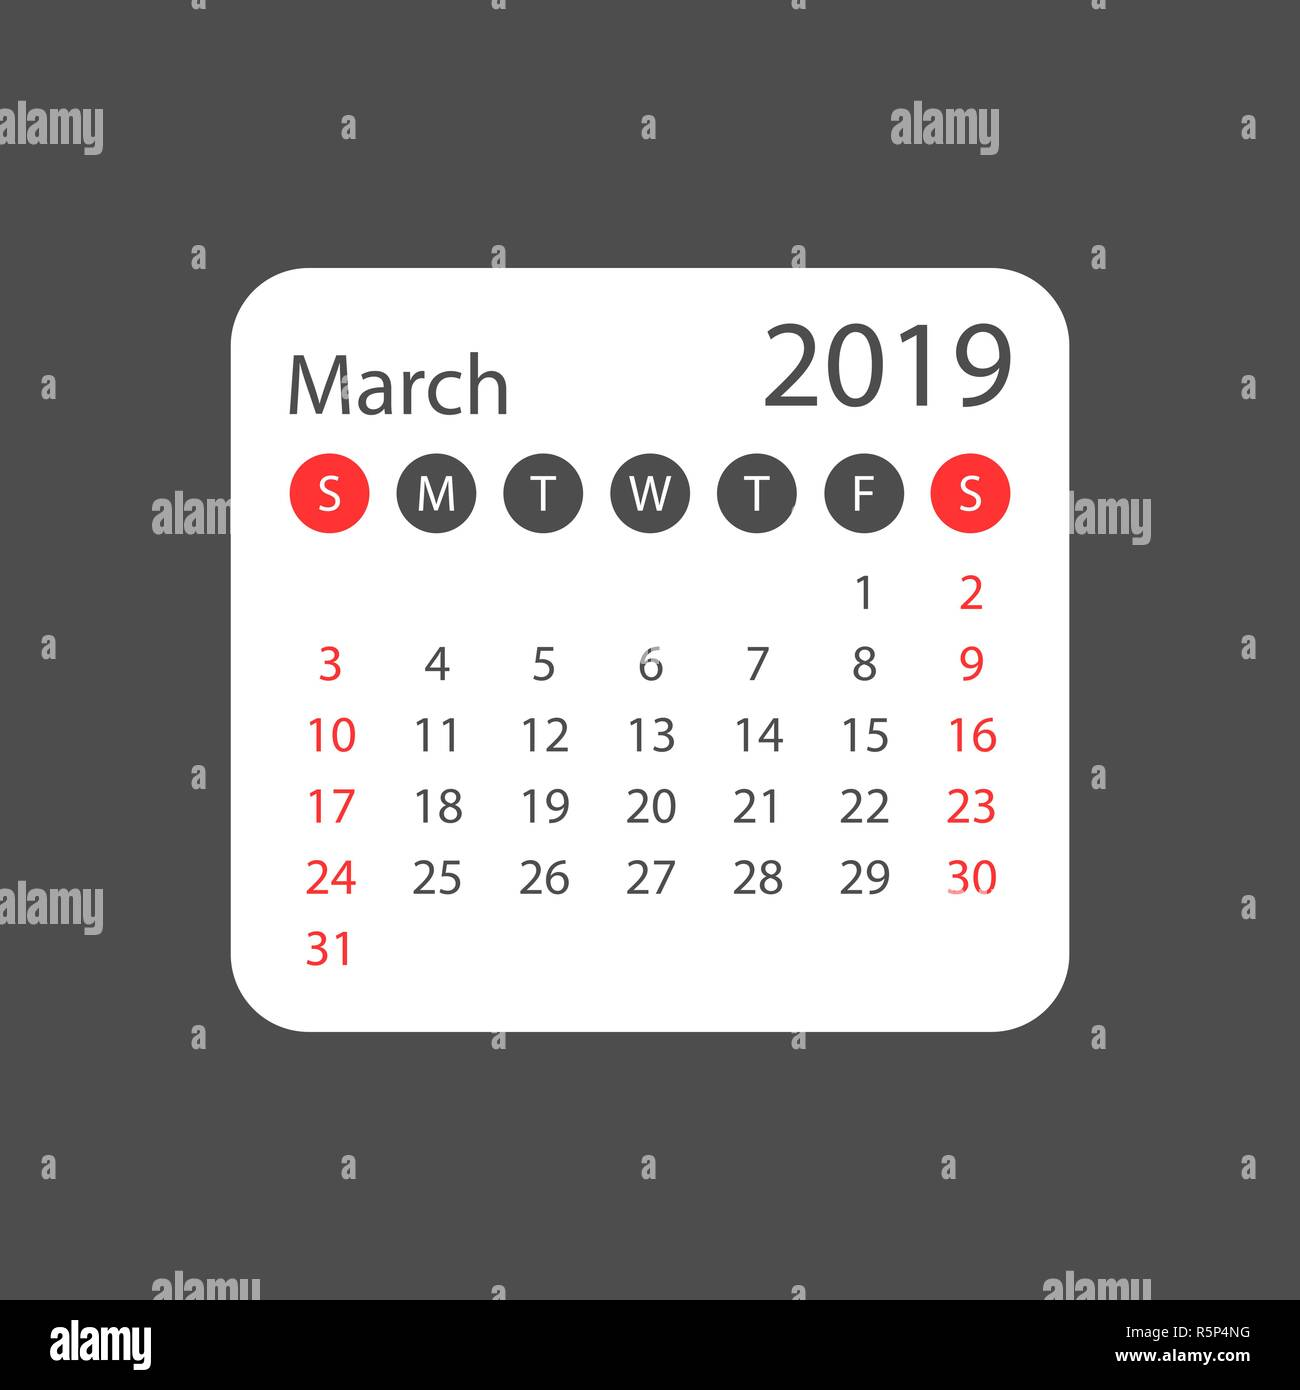 Calendar march 2019 year in simple style. Calendar planner design template. Agenda march monthly reminder. Business vector illustration. Stock Vector